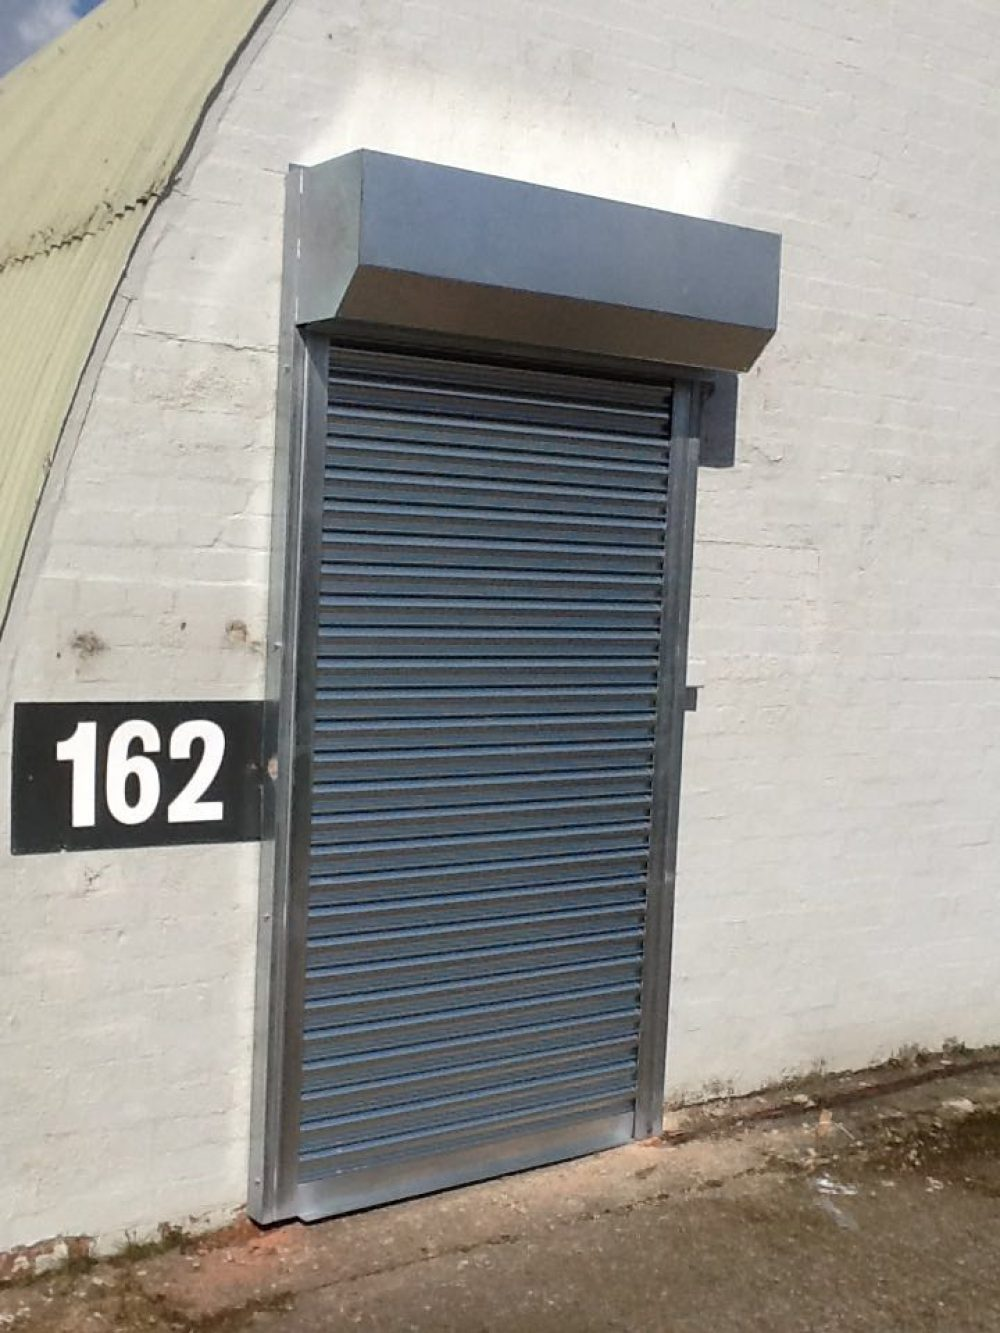 SWS Electric Seceurodoor 75 Commercial Shutter with Key Switch Operation installed in Culham, Oxfordshire by Shutter Spec Security.